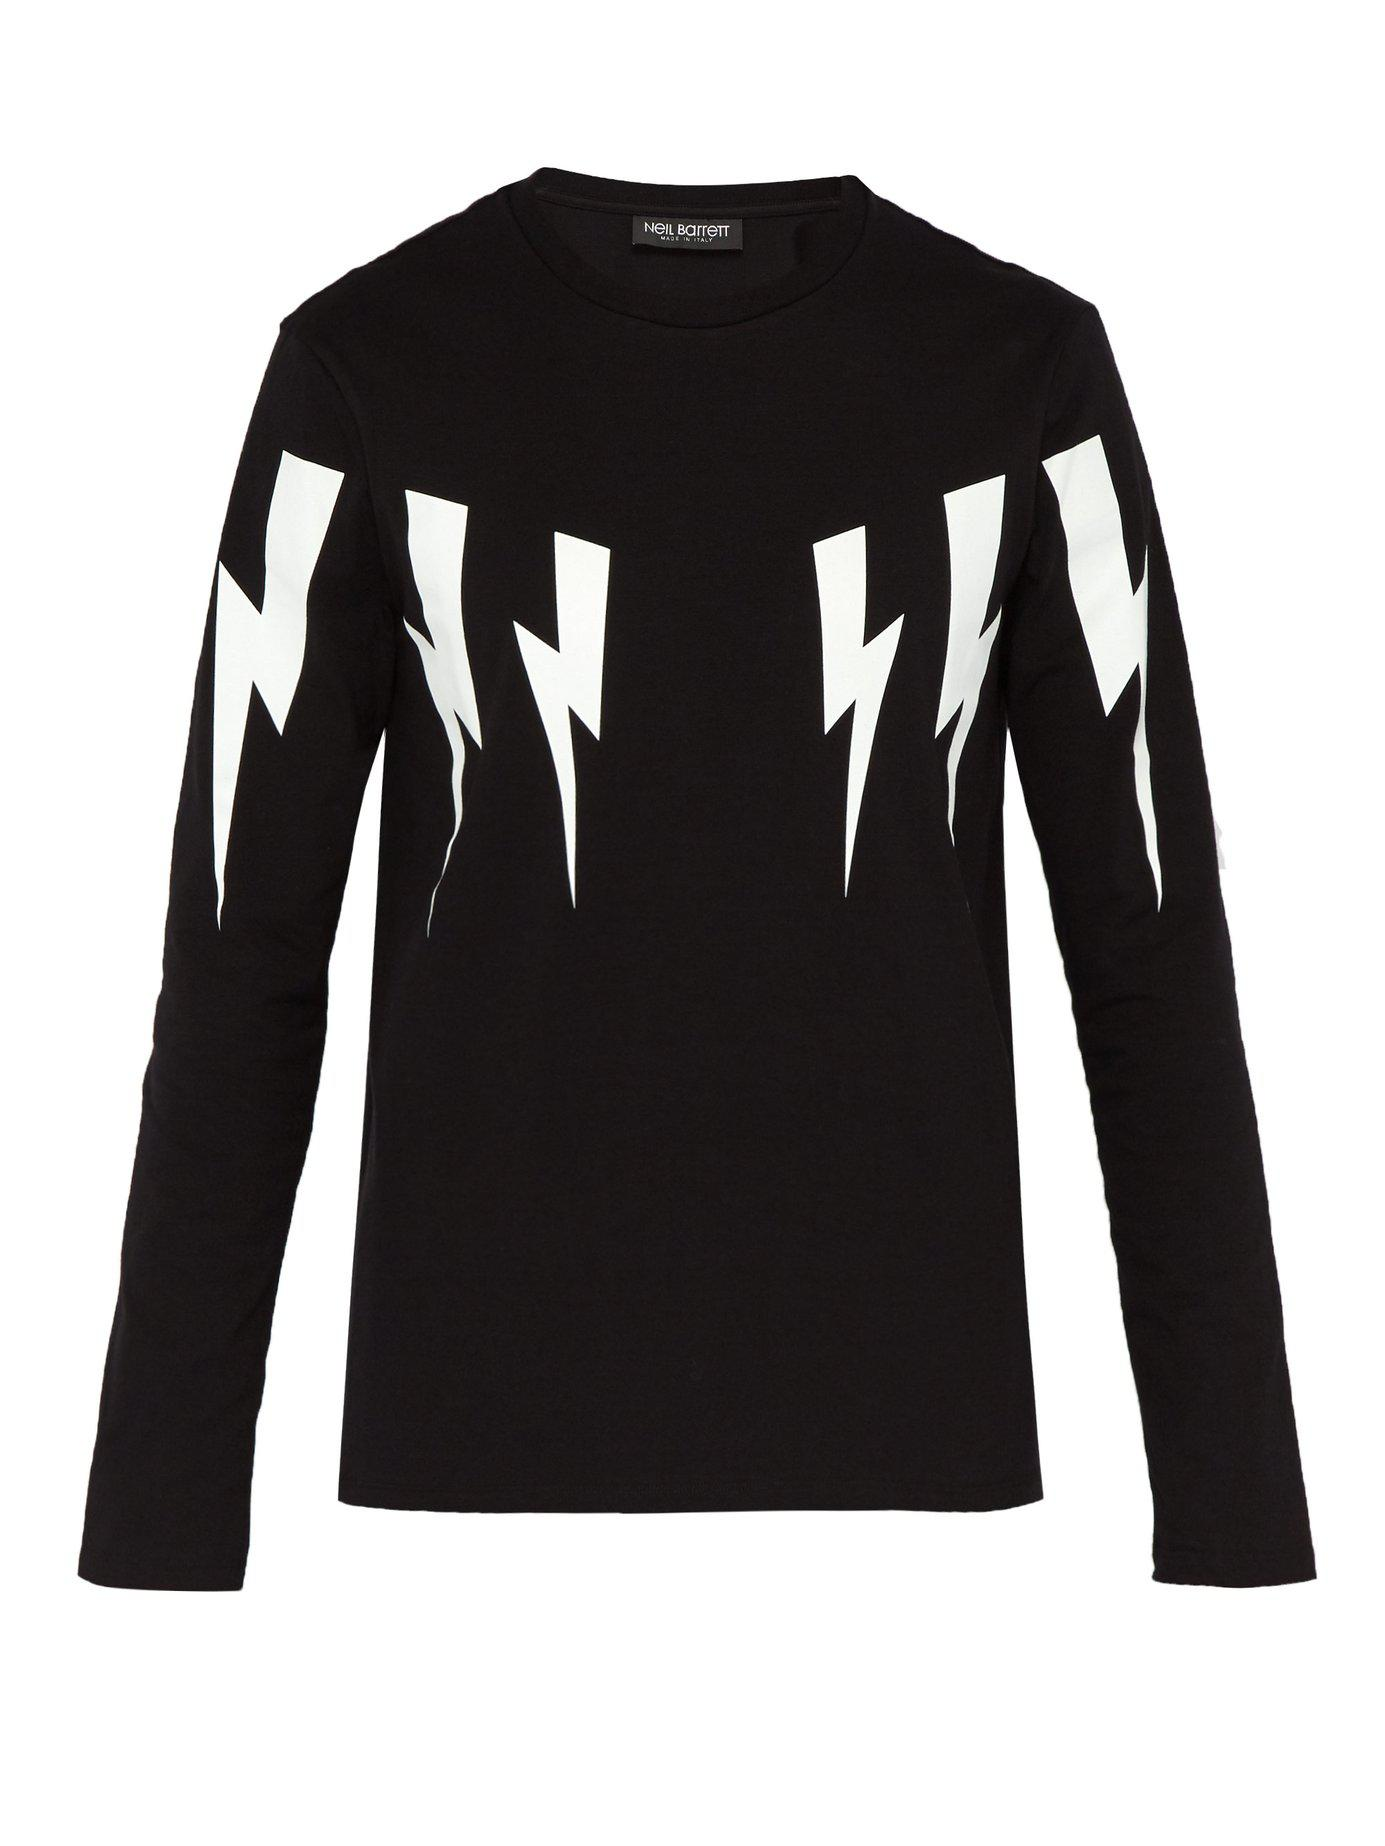 576f1df99 Neil Barrett - Black Lightning Bolt Cotton Blend T Shirt for Men - Lyst.  View fullscreen